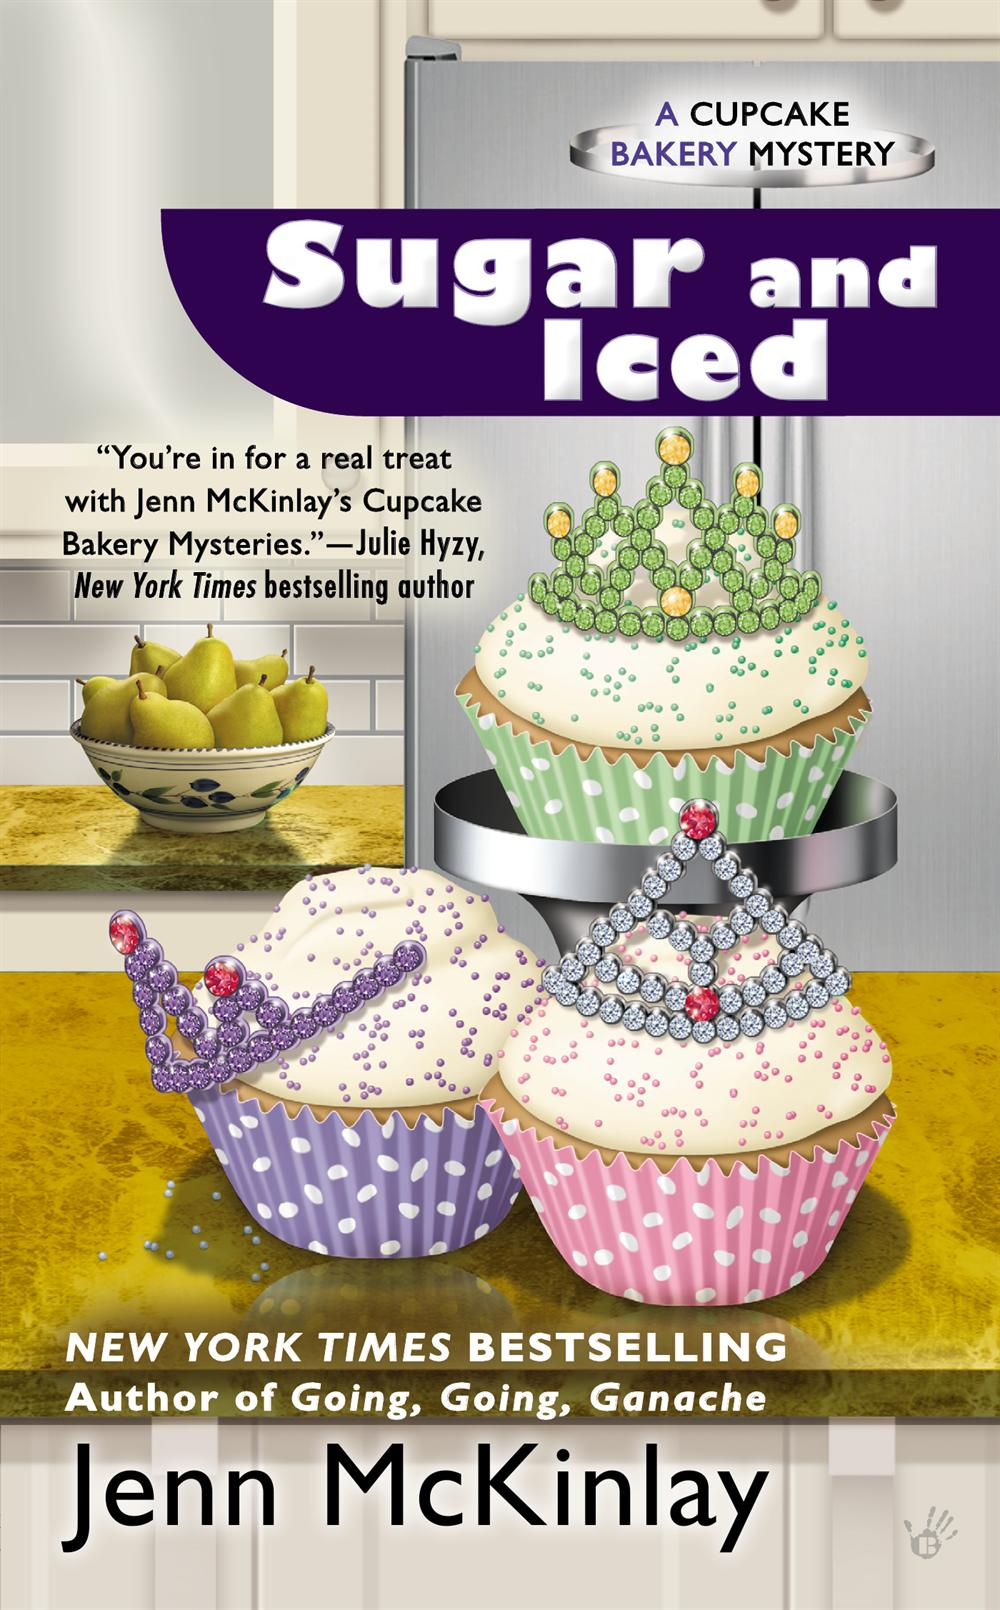 Sugar and Iced: A Cupcake Bakery Mystery